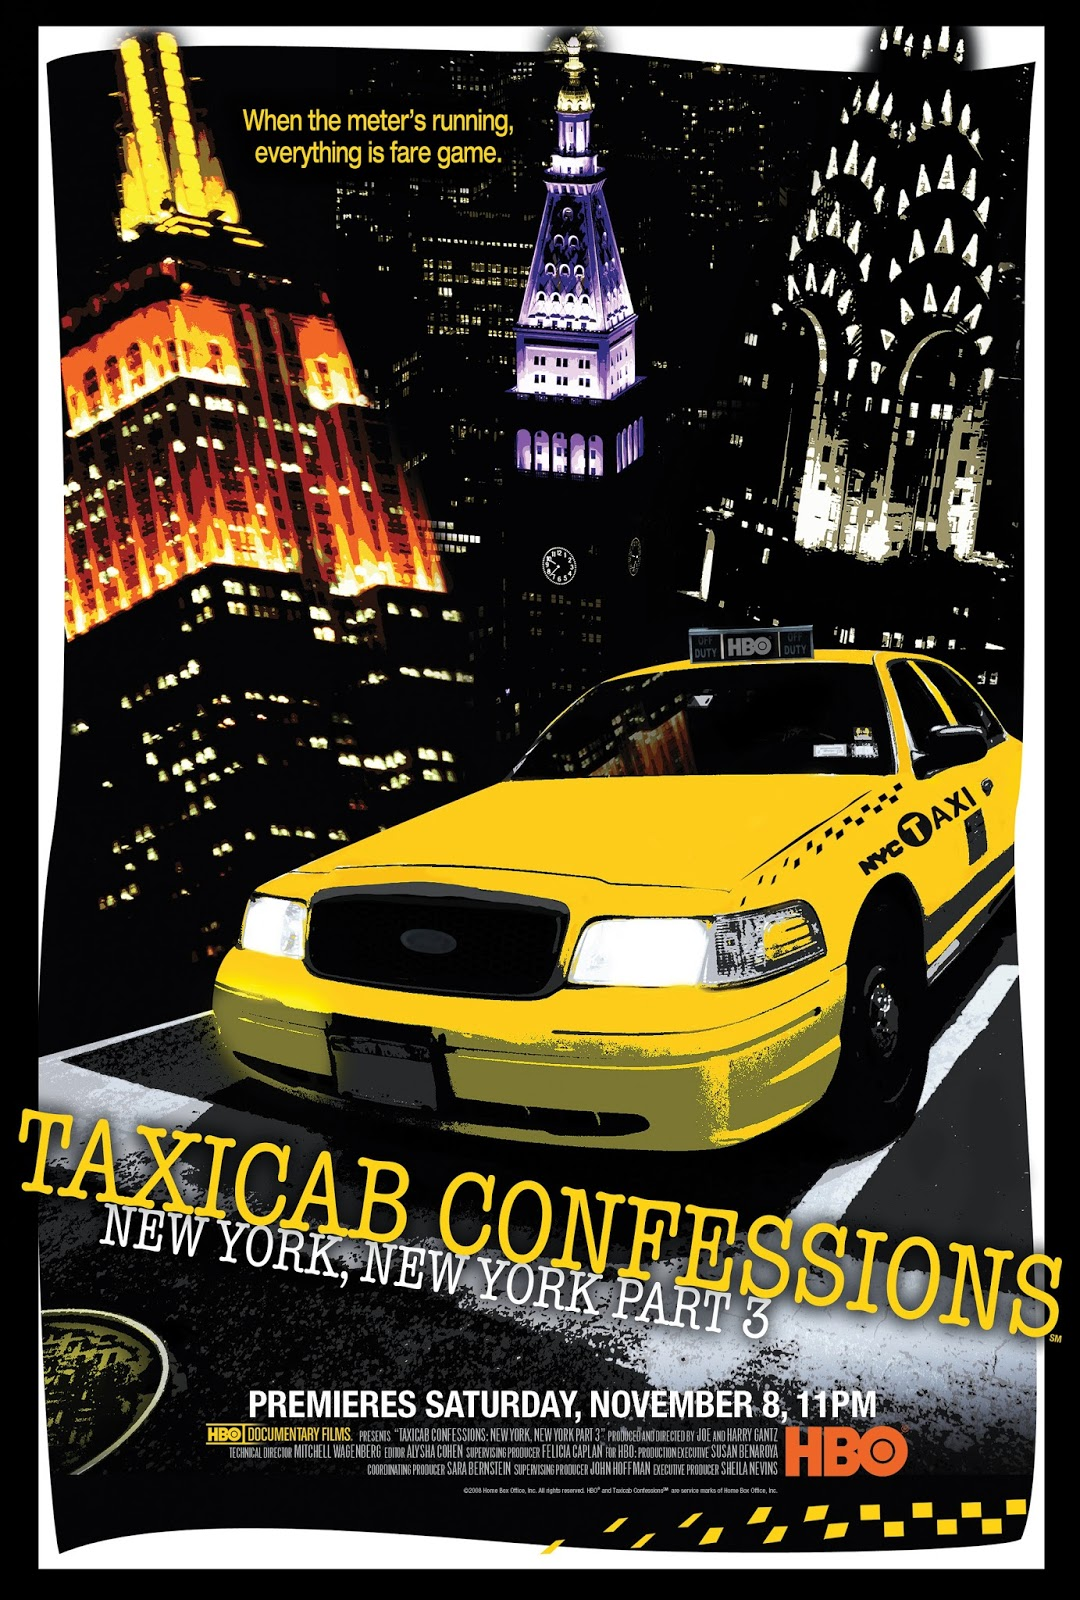 Face Of Hugo Boss Taxicab Confessions